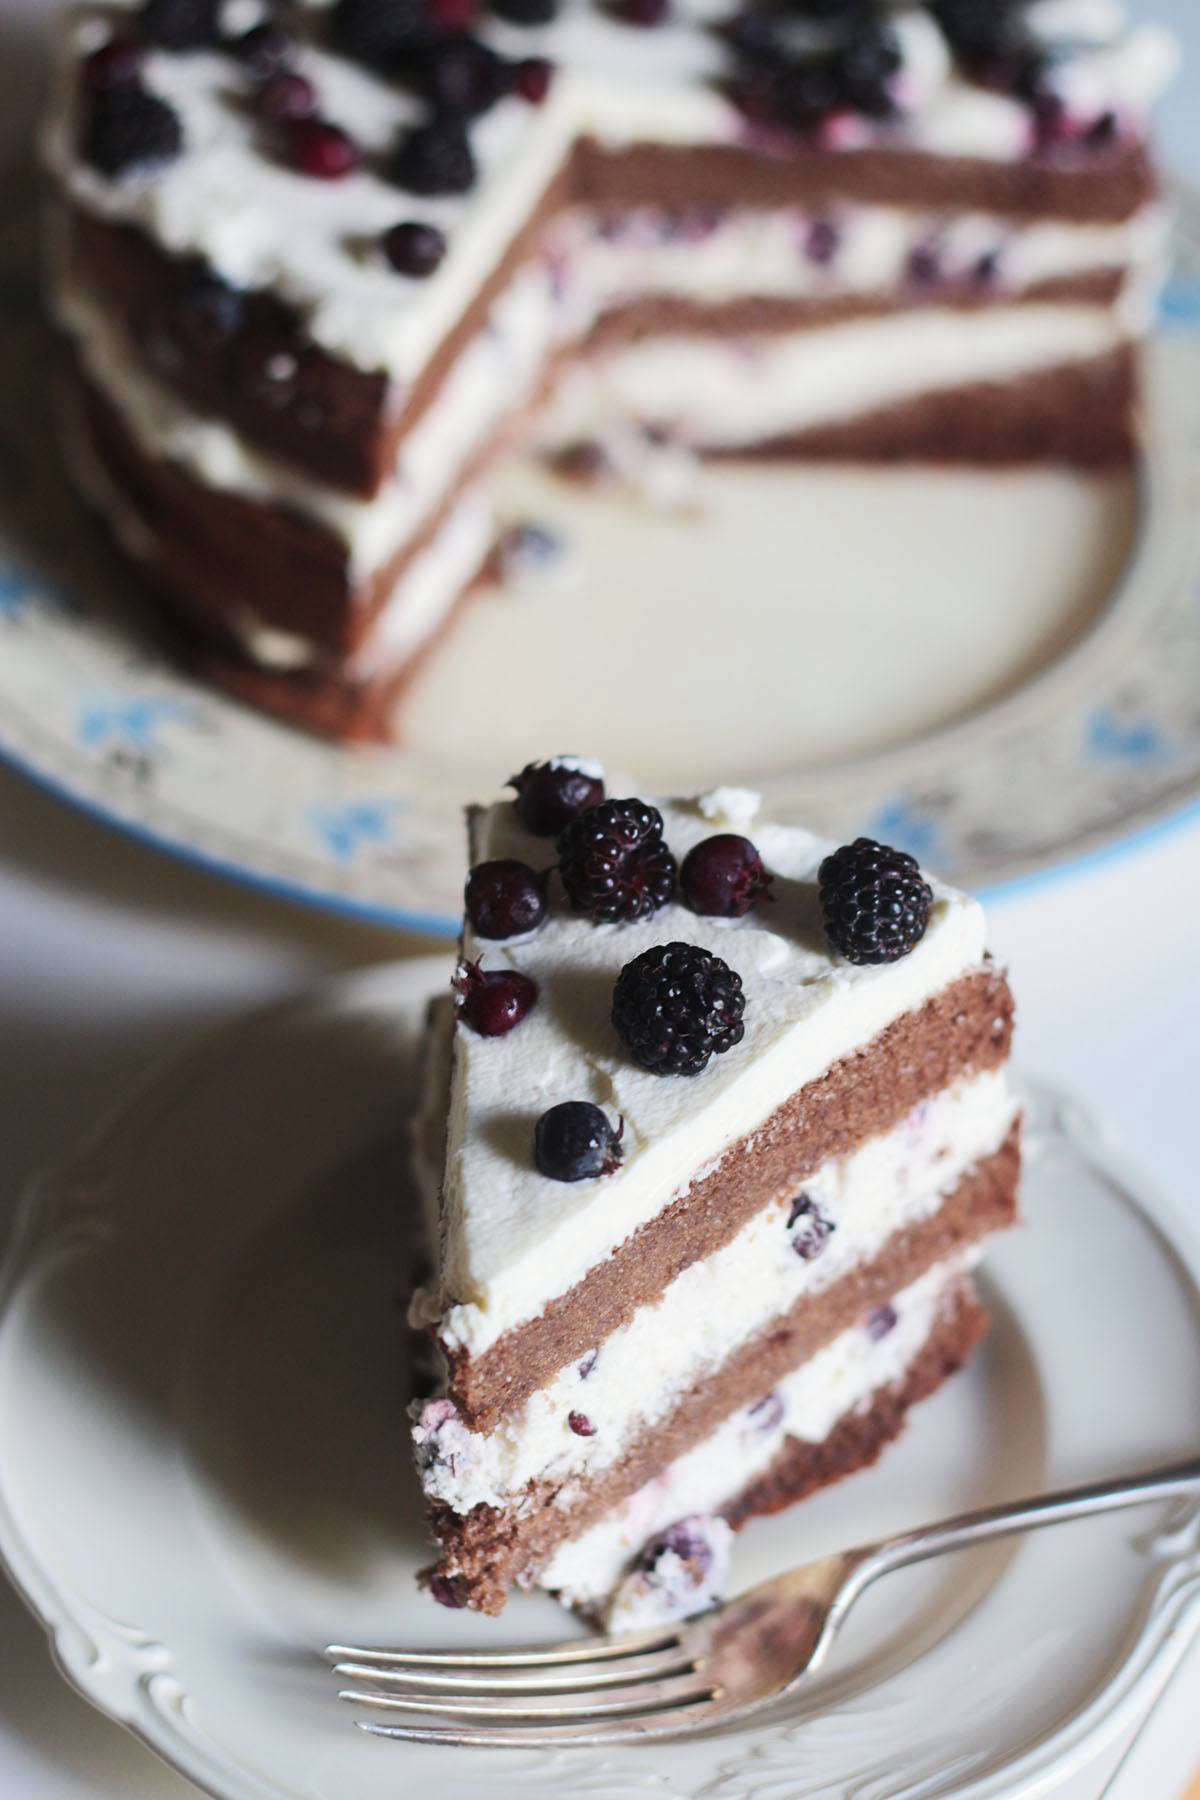 The dark, complex flavor of black raspberries is delicious with chocolate. I included them recently in a riff on a Black Forest cake, along with indigenous serviceberries (also known as saskatoon).